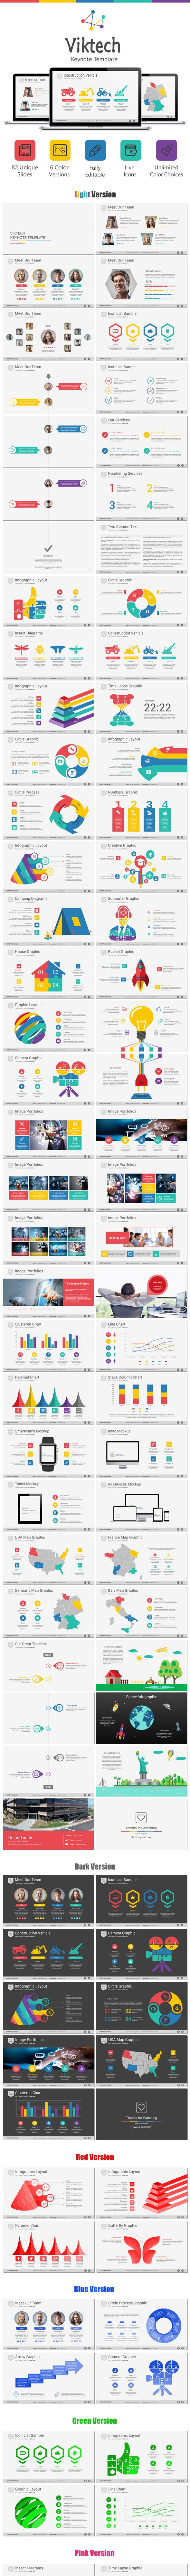 Viktech Keynote - Business Keynote Templates